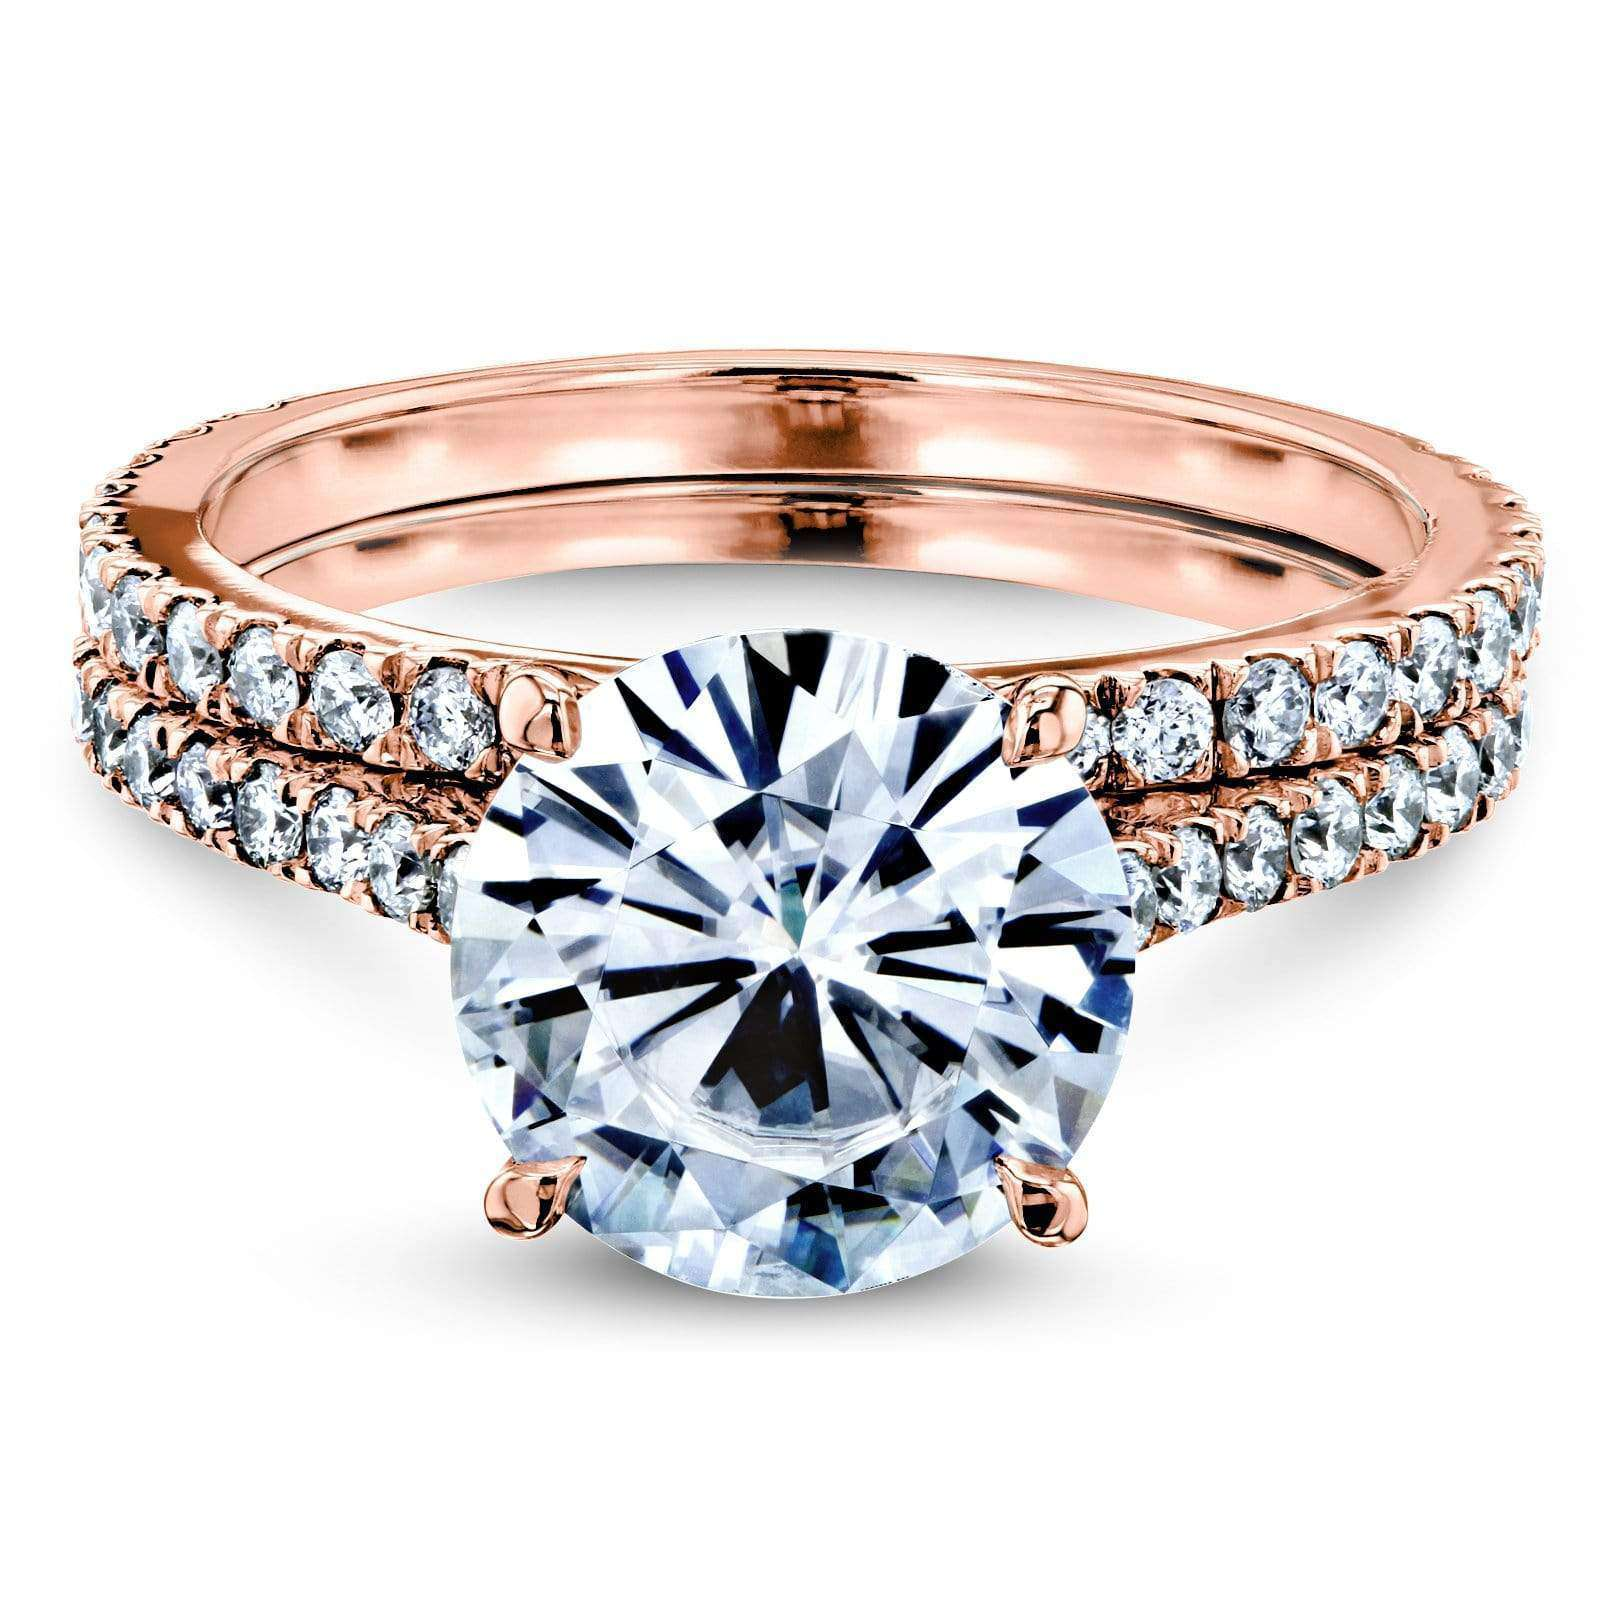 Compare Basket Cathedral 9mm Moissanite and Diamond Rings 14k Rose Gold (HI/VS GH/I) - 6